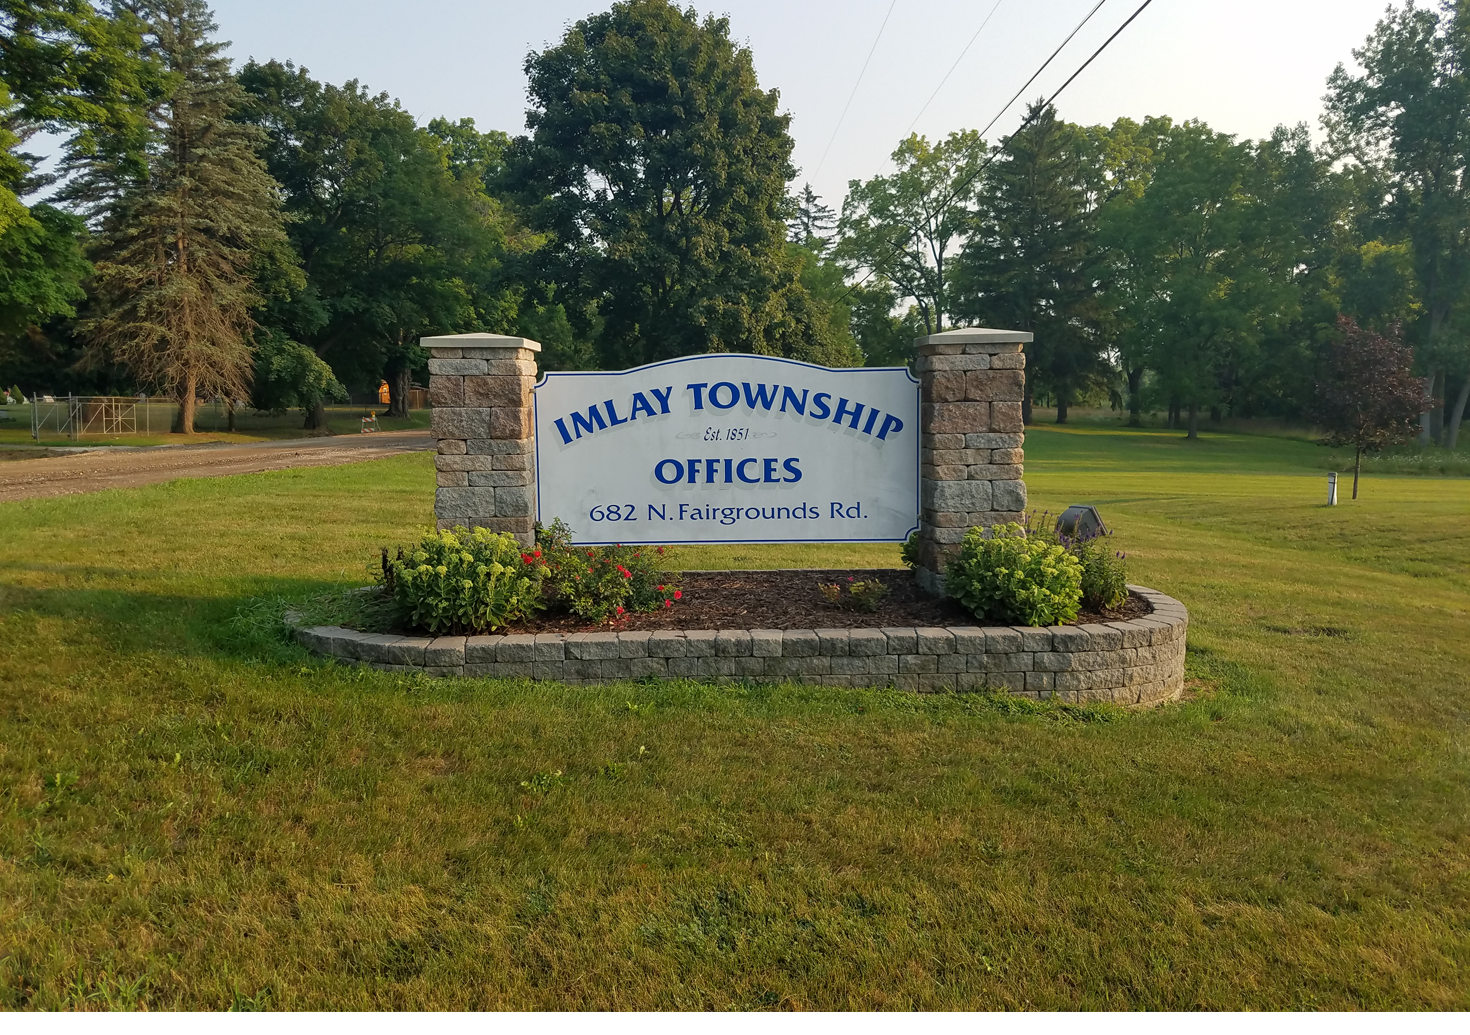 imlay-twp-mi-offices-sign